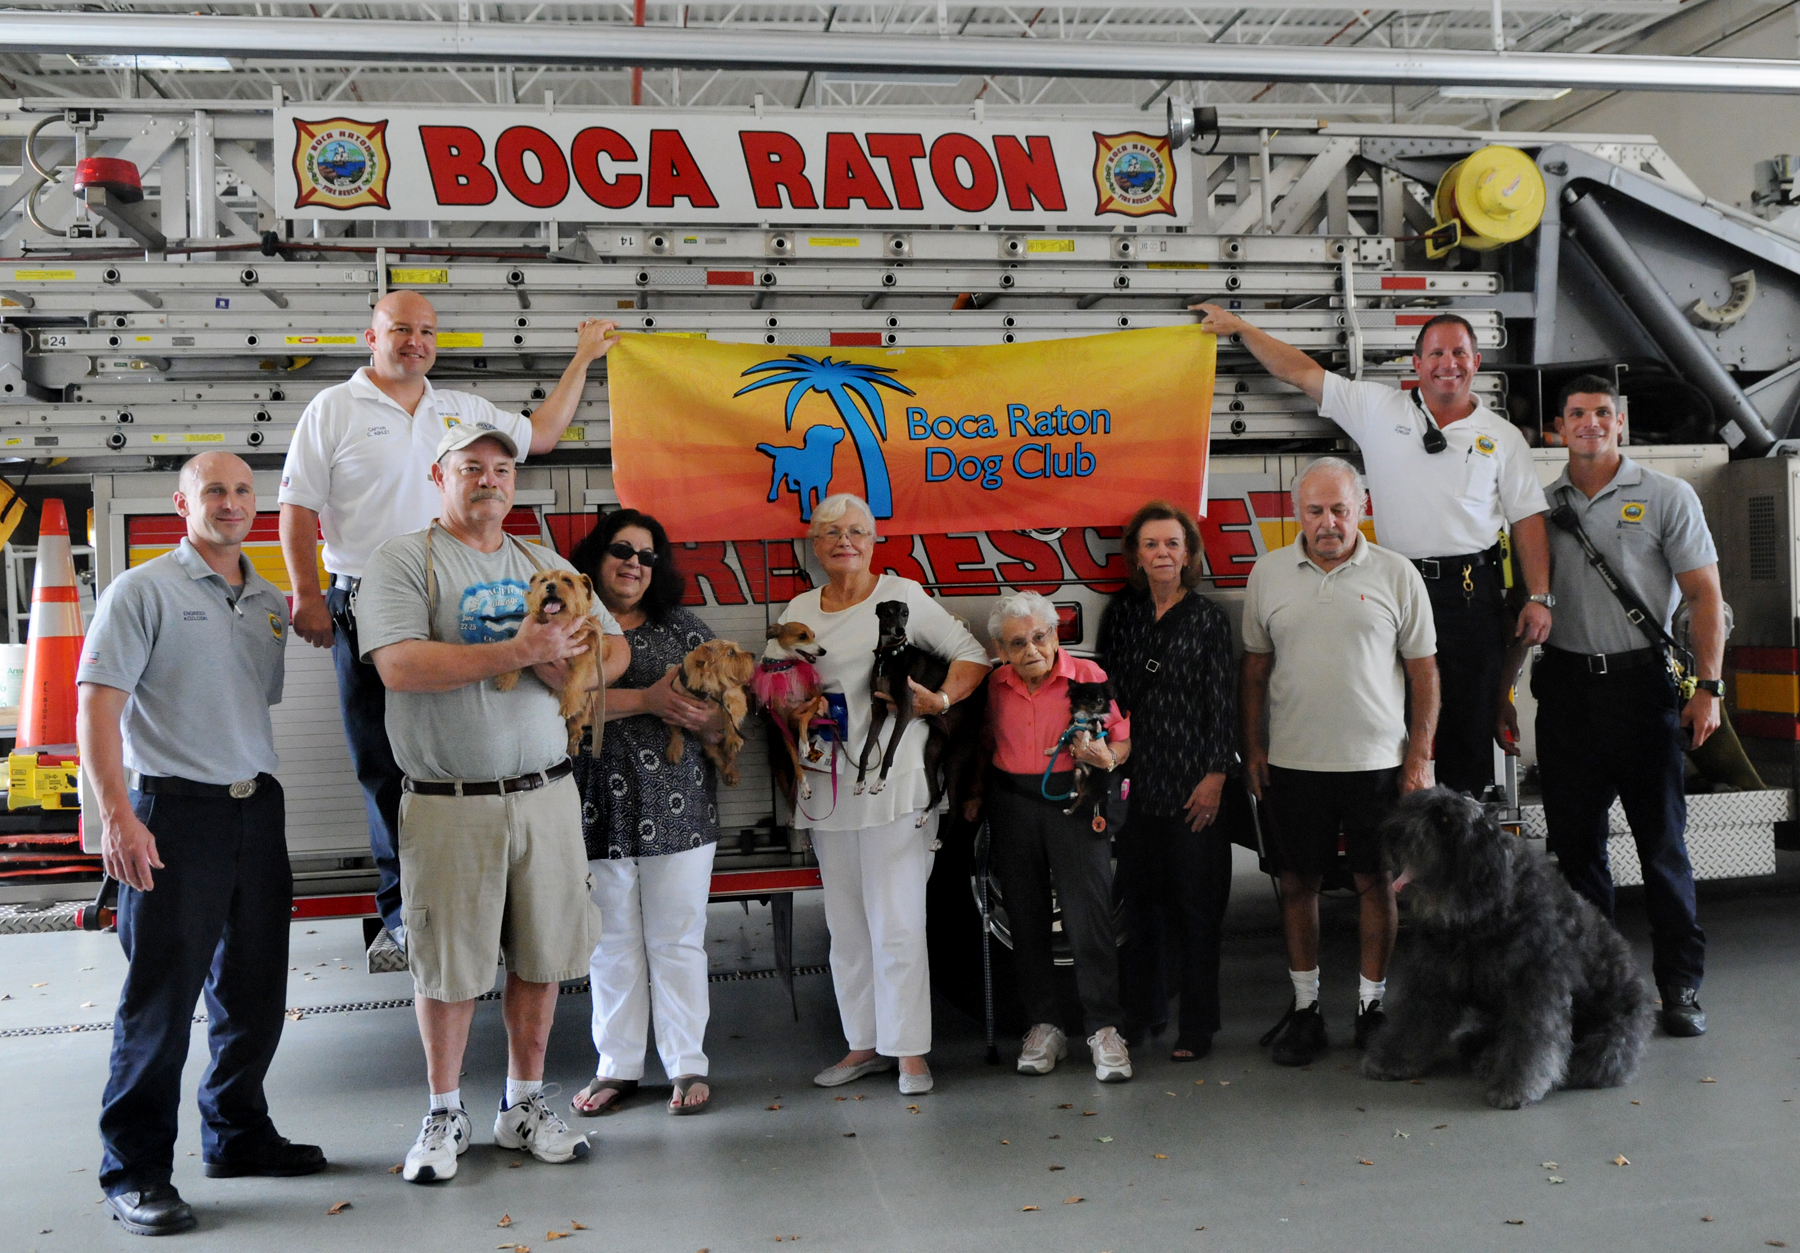 FPG-BRF-FIREDOG-0812a FPG photo/Marta Mikulan Martin 7/31/15 July 31 2015: The Boca Raton Dog Club was donating pet oxygen mask to Boca Raton Fire Rescue. The club is doing with profits from their recent American Kennel Club Dog Show.. At Fire Station #5, members of the club and squad members are sharing a photo to celebrate the donation.